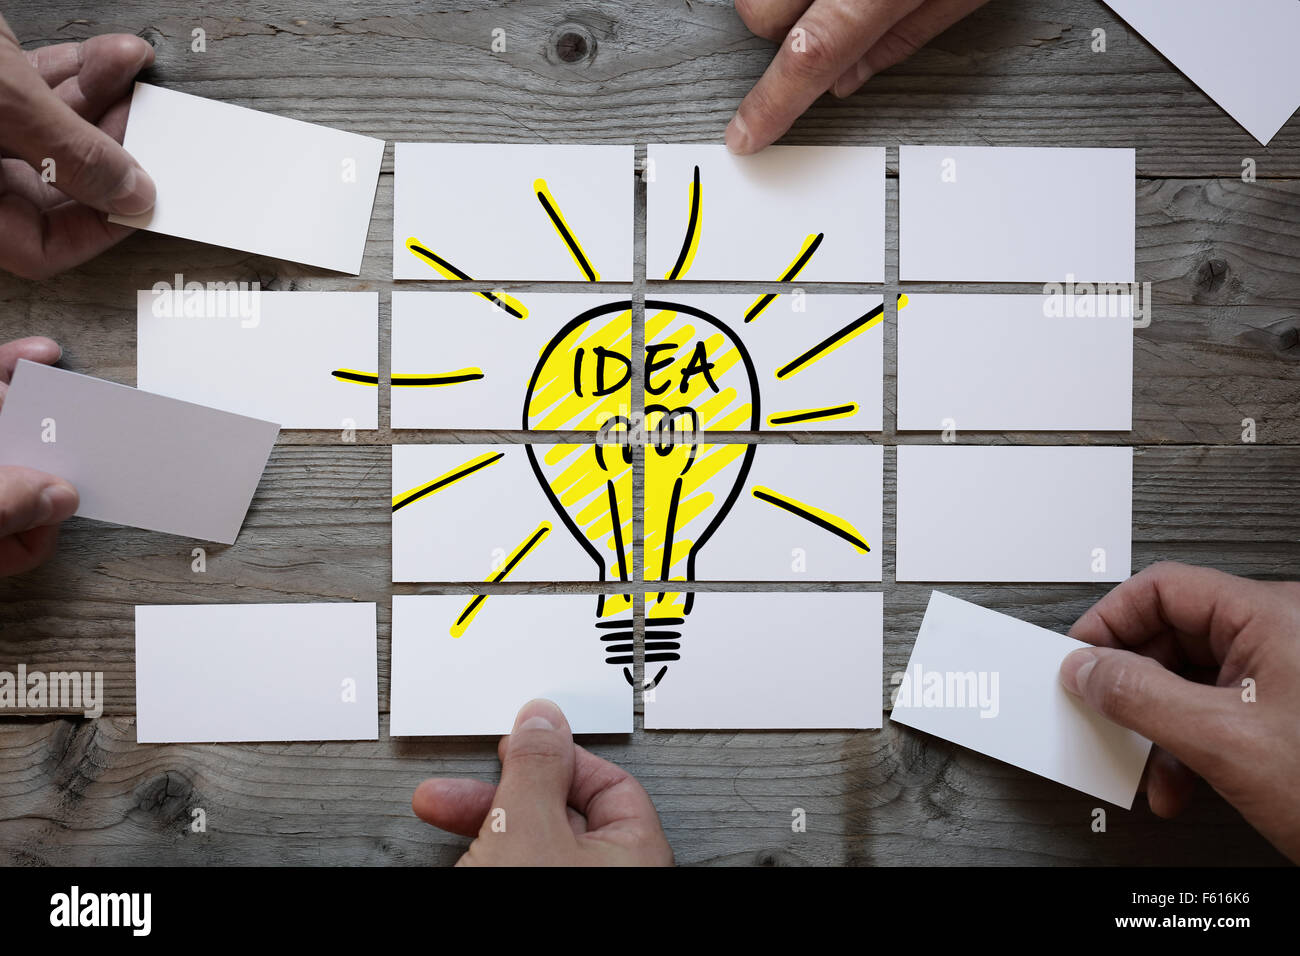 Business team brainstorming and finding a solution or good idea with light bulb drawing on business card paper - Stock Image